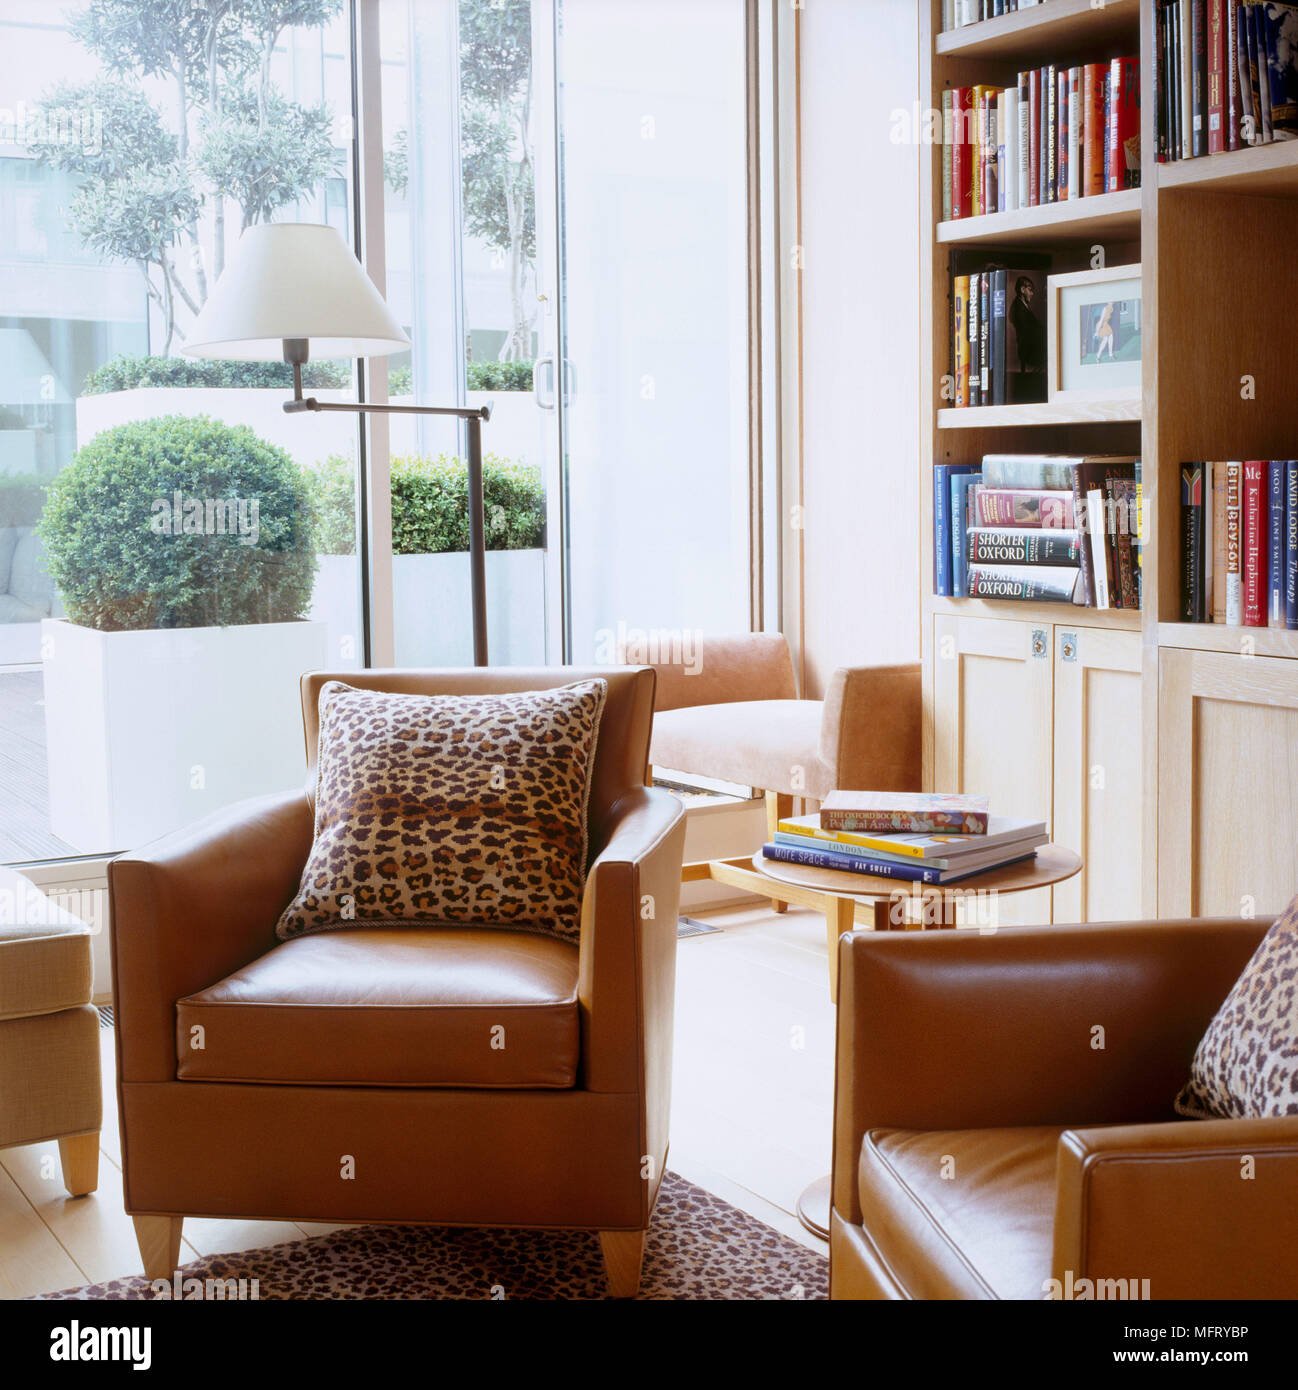 Picture of: A Modern Sitting Room With Tan Leather Armchairs Bookcase Round Side Table Floor Lamp Leopard Skin Print Cushions Stock Photo Alamy